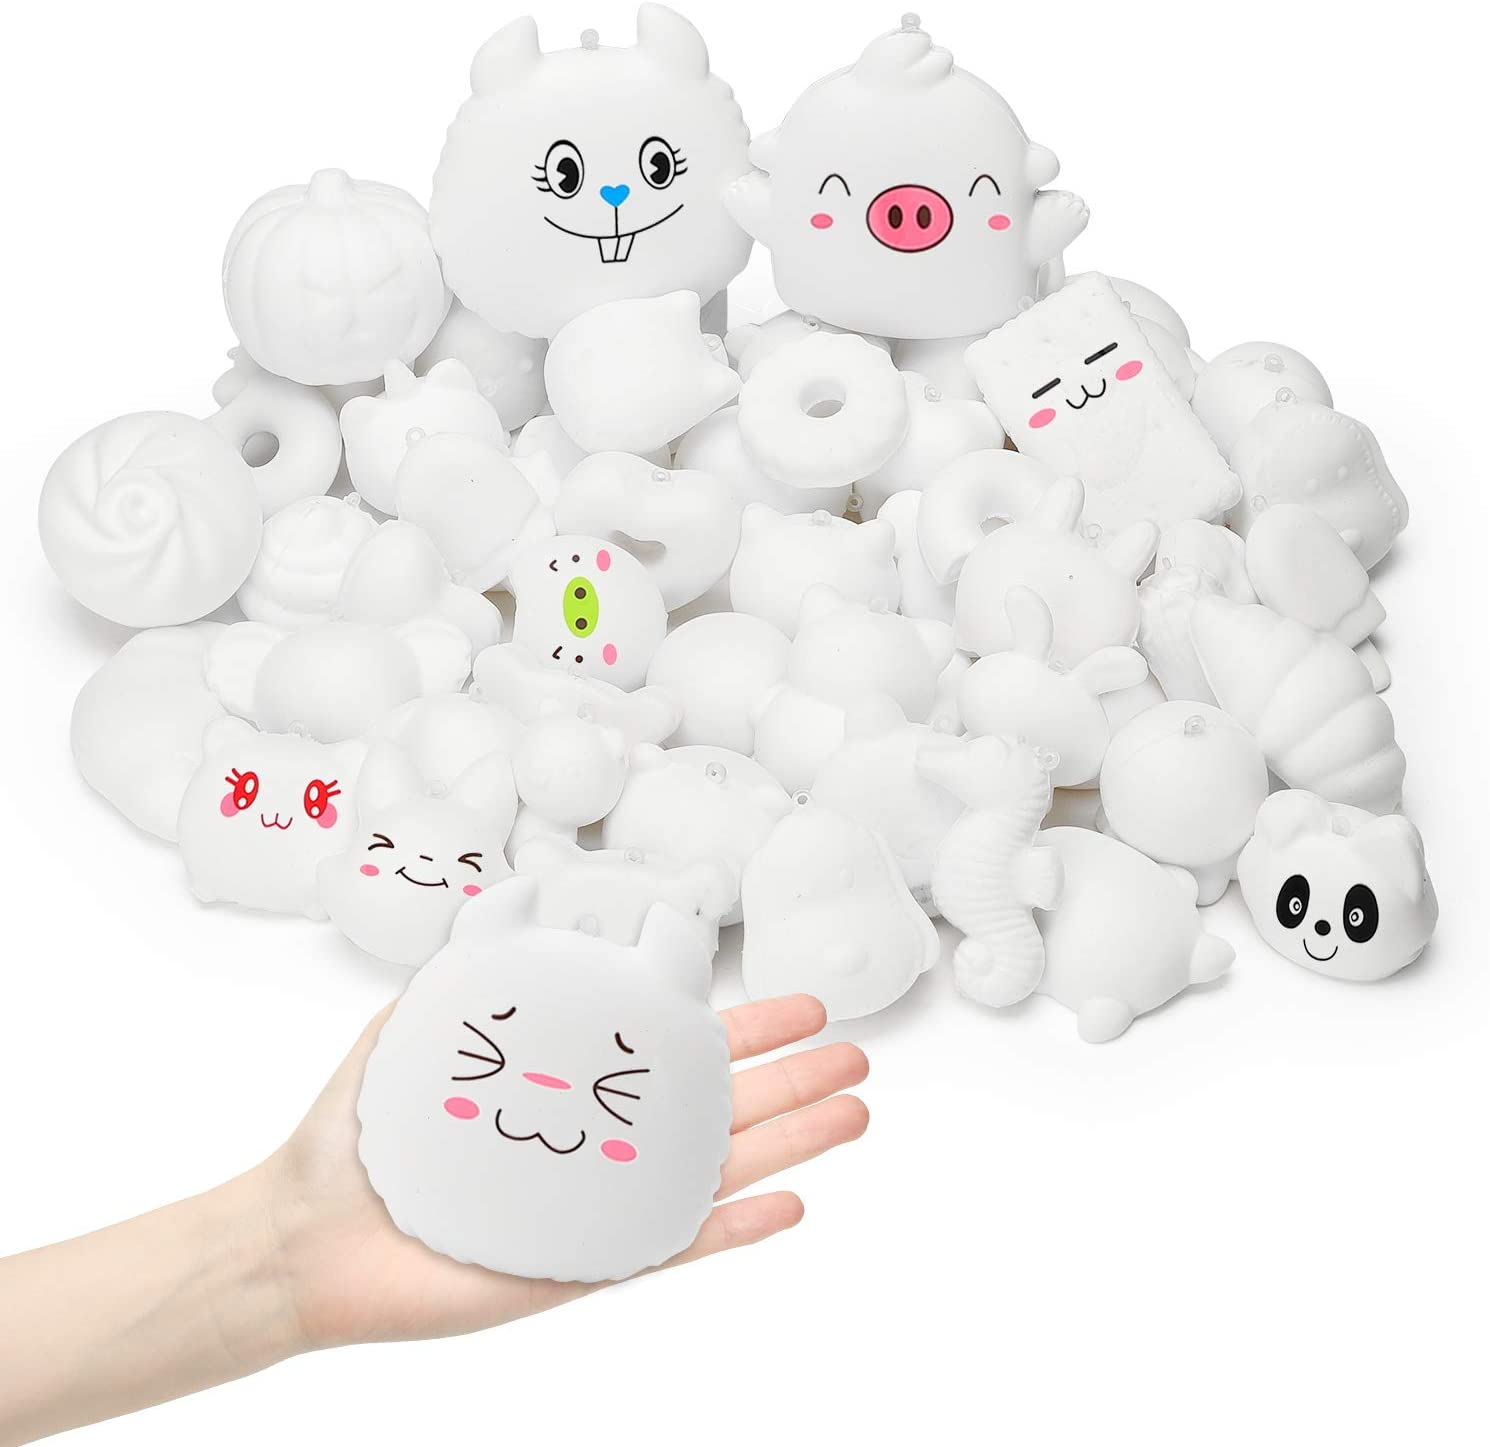 WATINC Random 60Pcs DIY Squishies Bulk, Slow Rising Stress Relief Kawaii Cream Scented Toy, Lovely Novelty Mini Animal Food Toys for Squeezing, Keychains Phone Straps Random Stickers